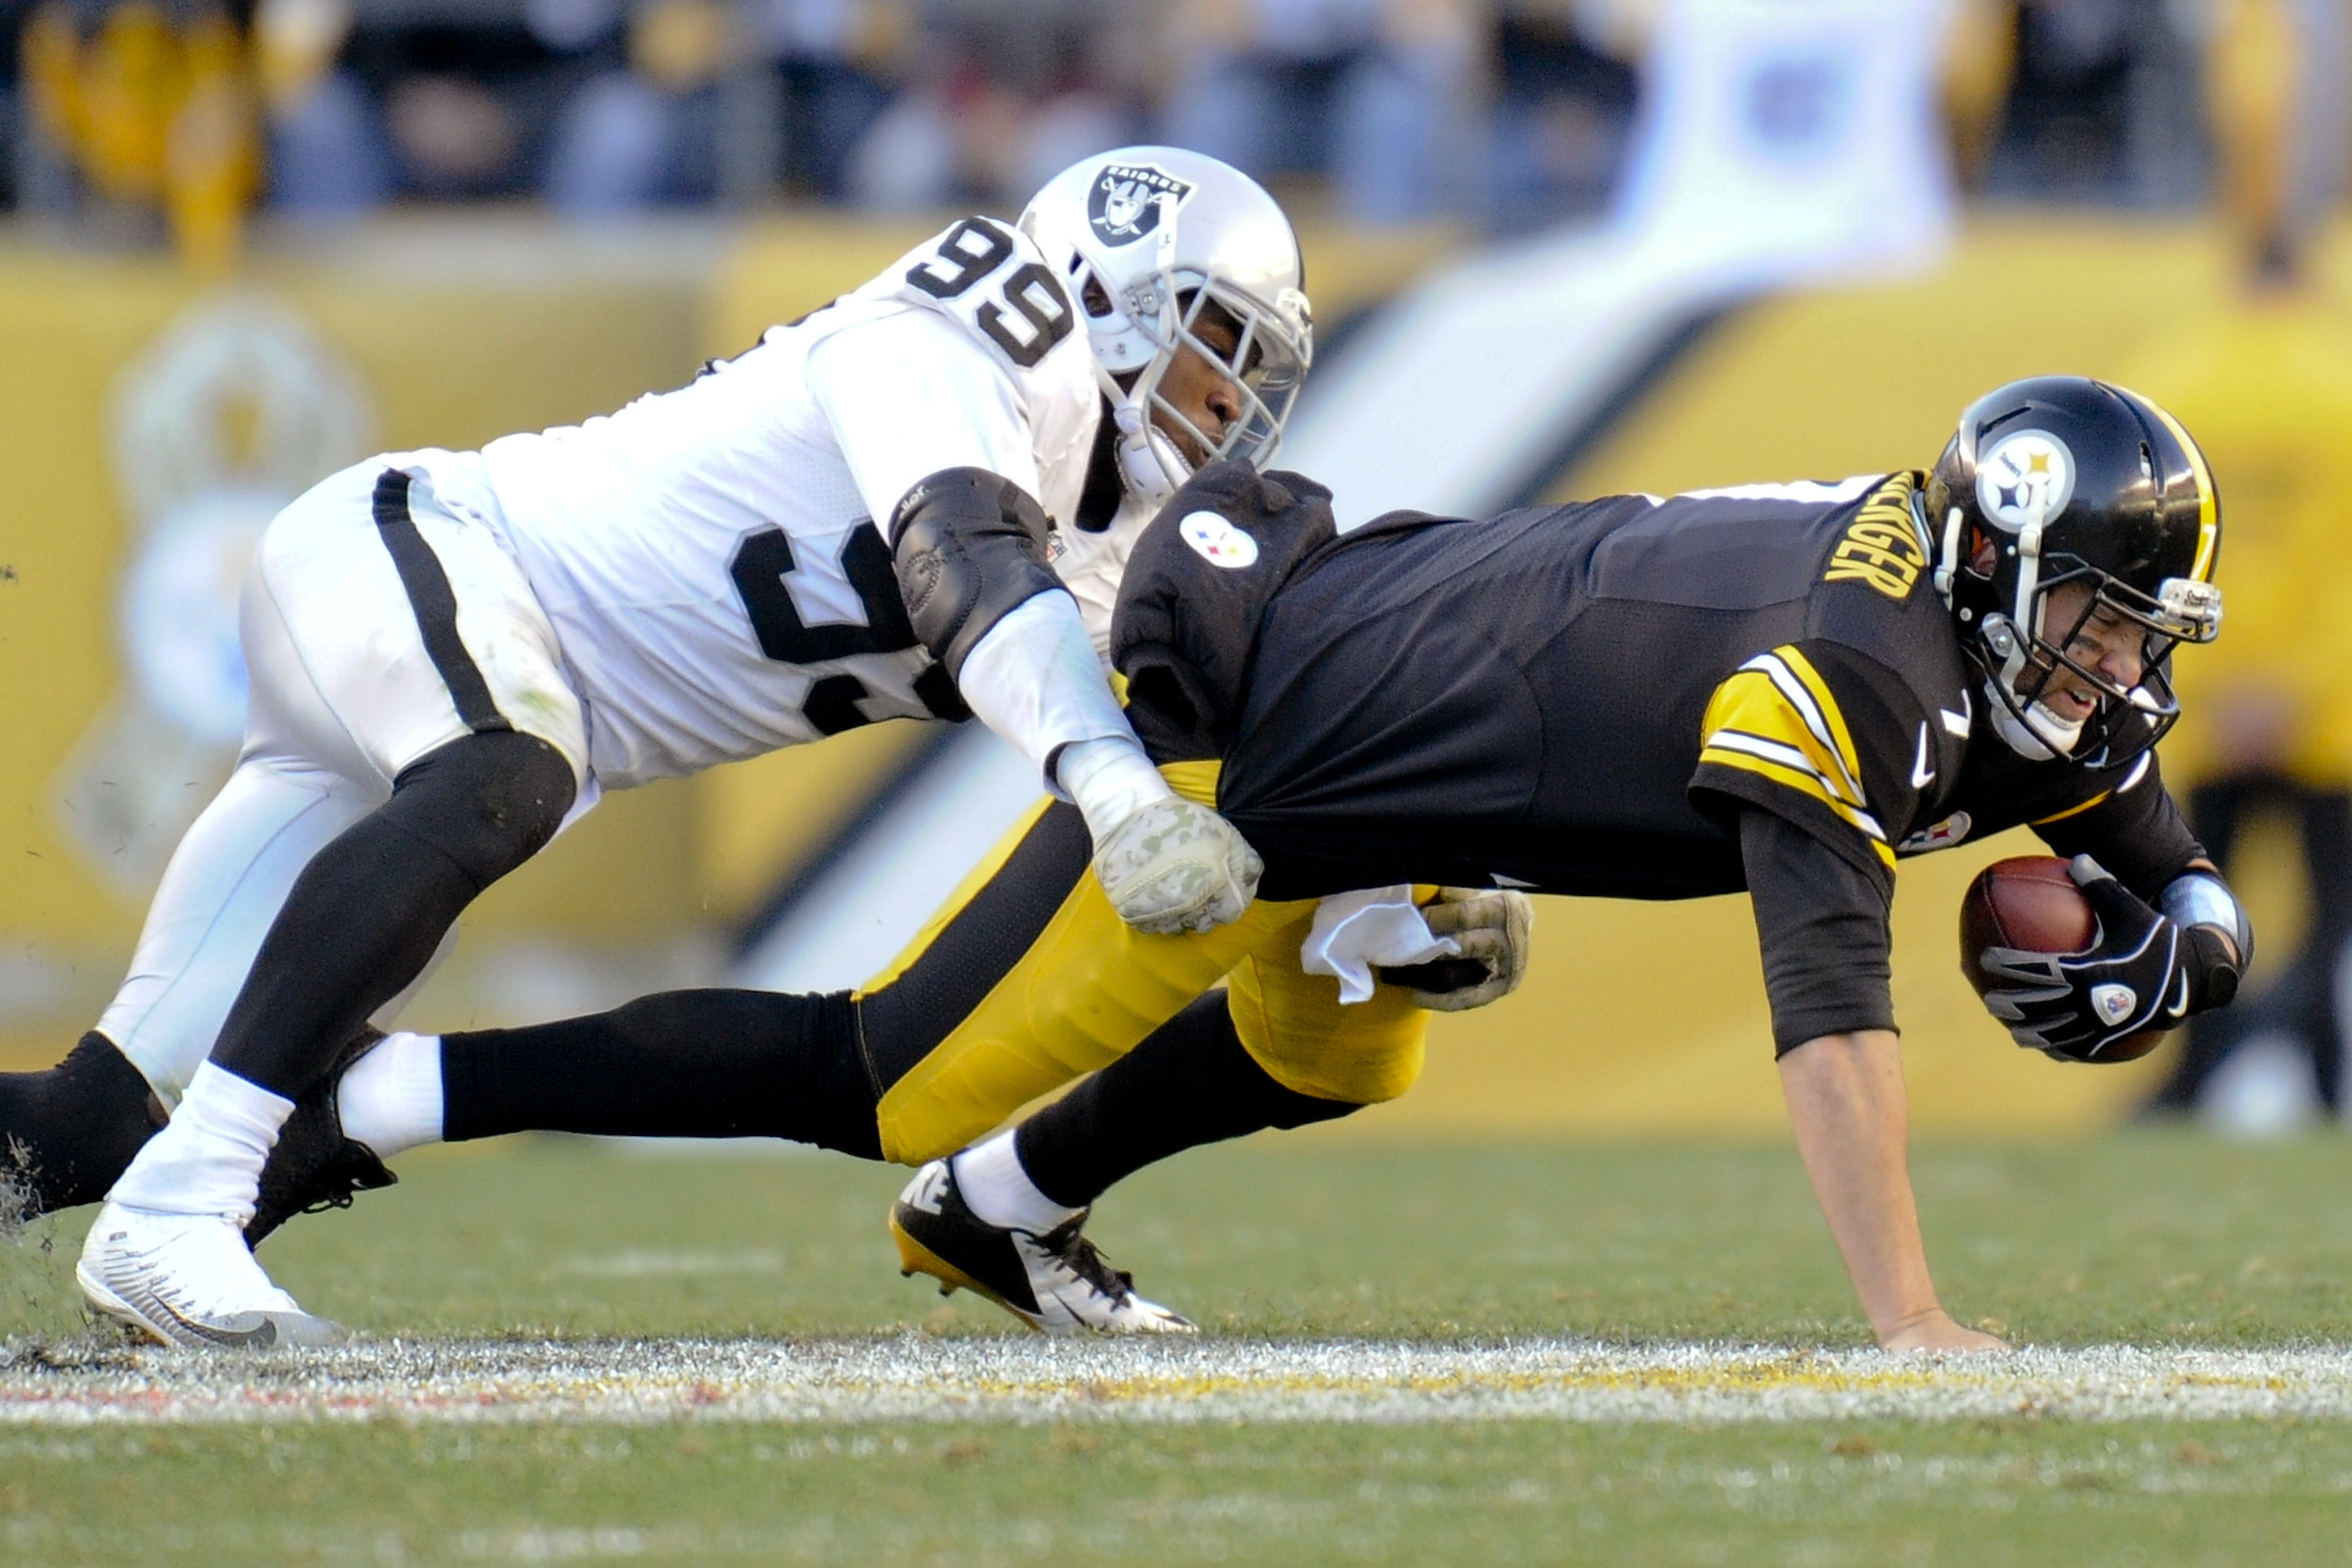 Pittsburgh Steelers quarterback Ben Roethlisberger (7) is injured as he is tackled by Oakland Raiders outside linebacker Aldon Smith (99) in the fourth quarter of an NFL football game Sunday, Nov. 8, 2015, in Pittsburgh. The Steelers won 38-35. (AP Photo/